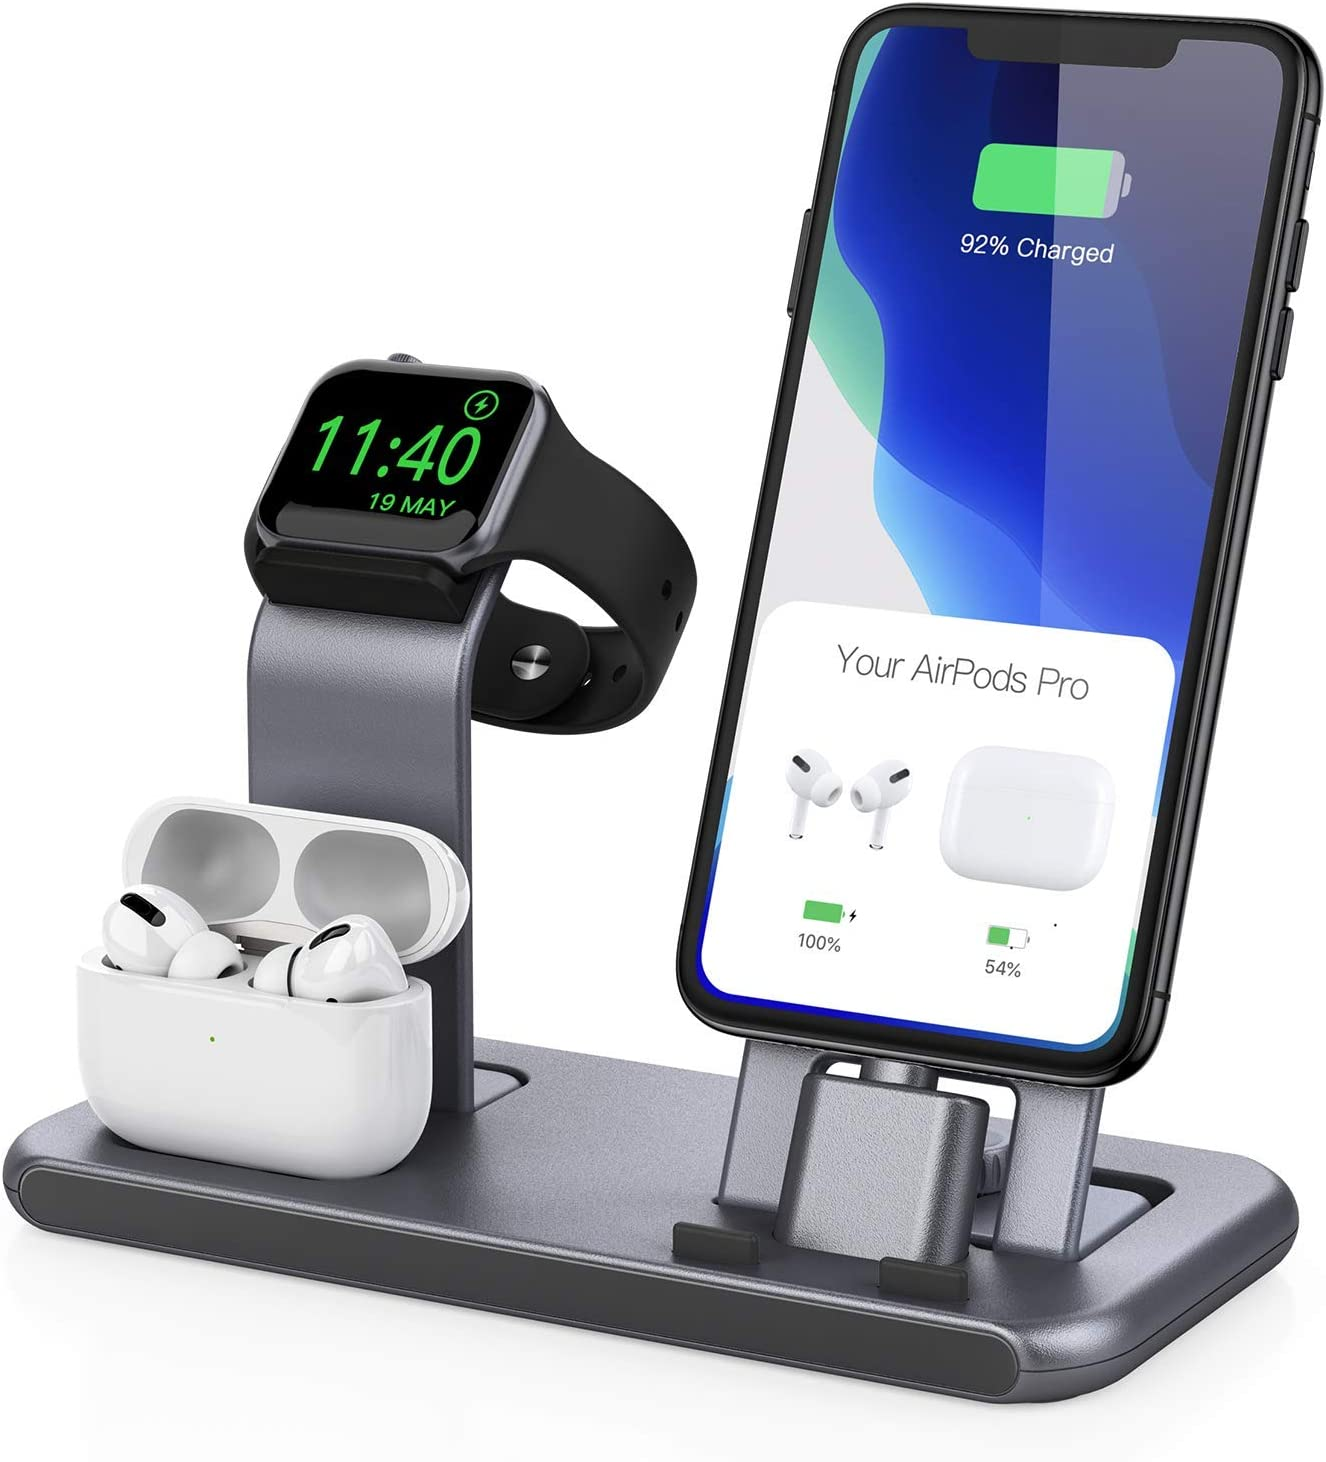 Conido 3 in 1 Charging Station for Apple Products, Stand for Apple Watch SE/6/5/4/3/2/1, for AirPods Pro/2/1 Charging Dock, Charger Station for iPhone 12 mini/12 Pro Max/SE/11Pro Max/XS Max/XR/8 Plus